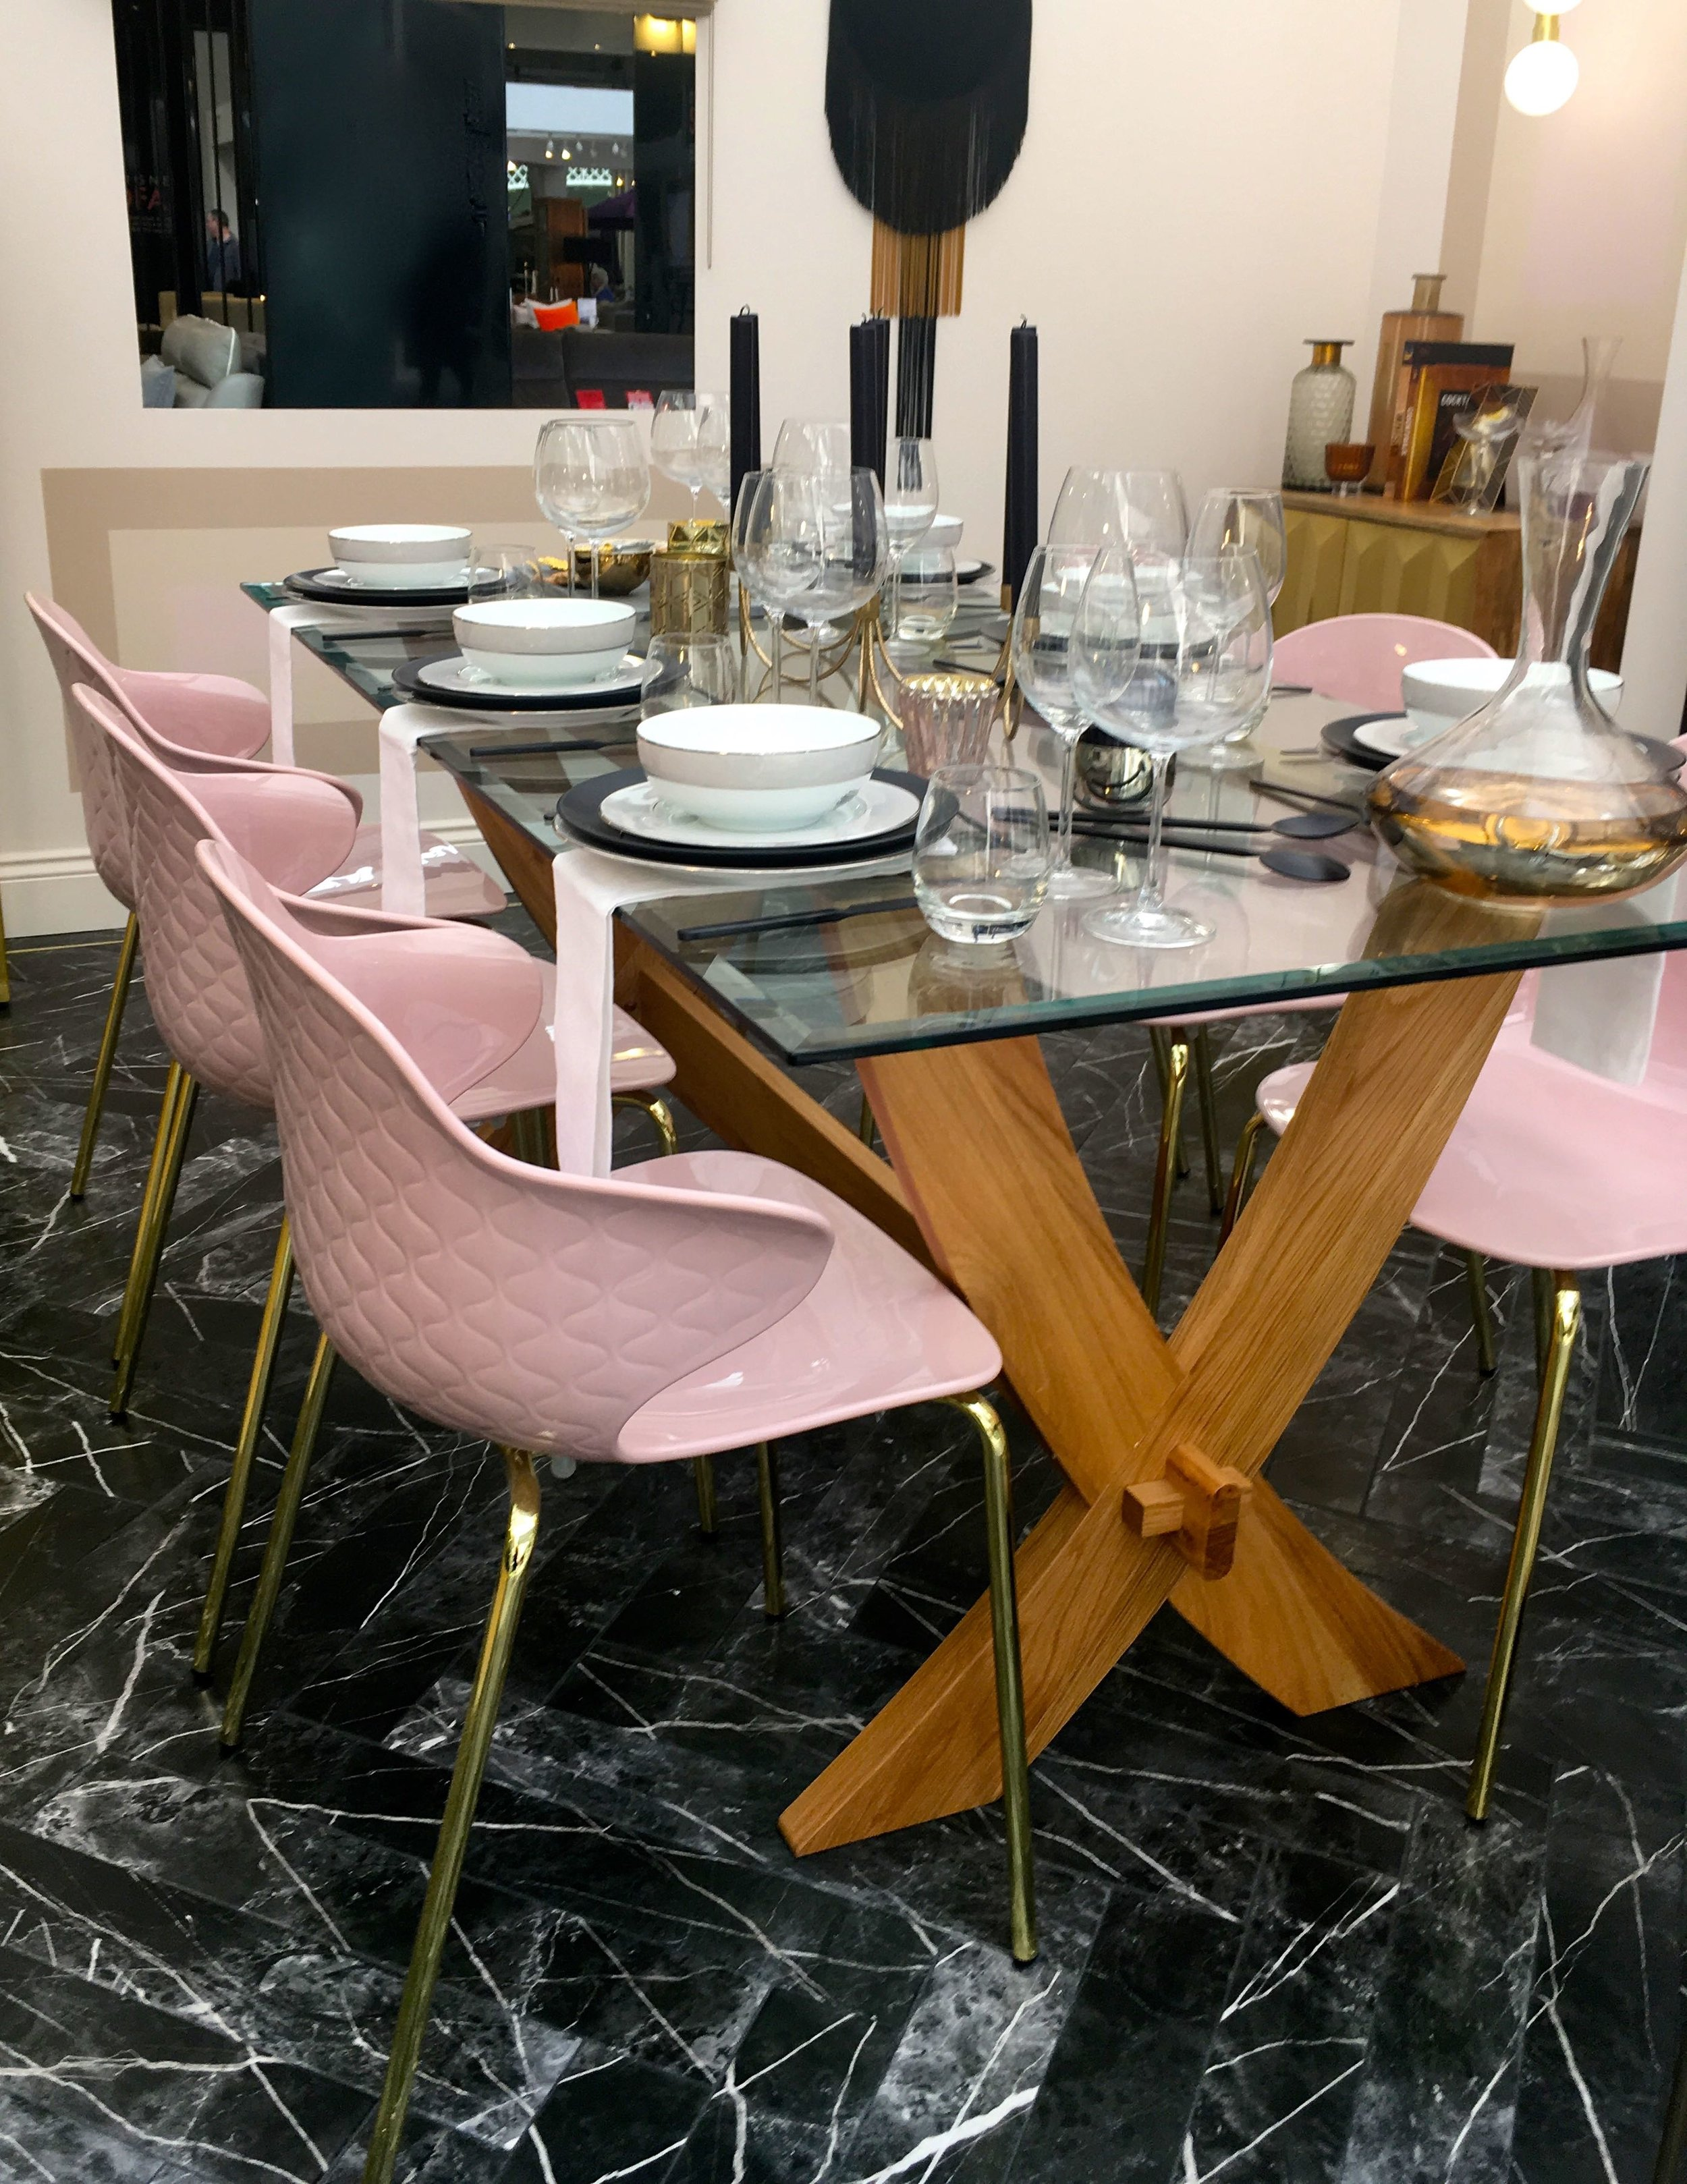 pastel pink, glass, wood and dramatic flooring